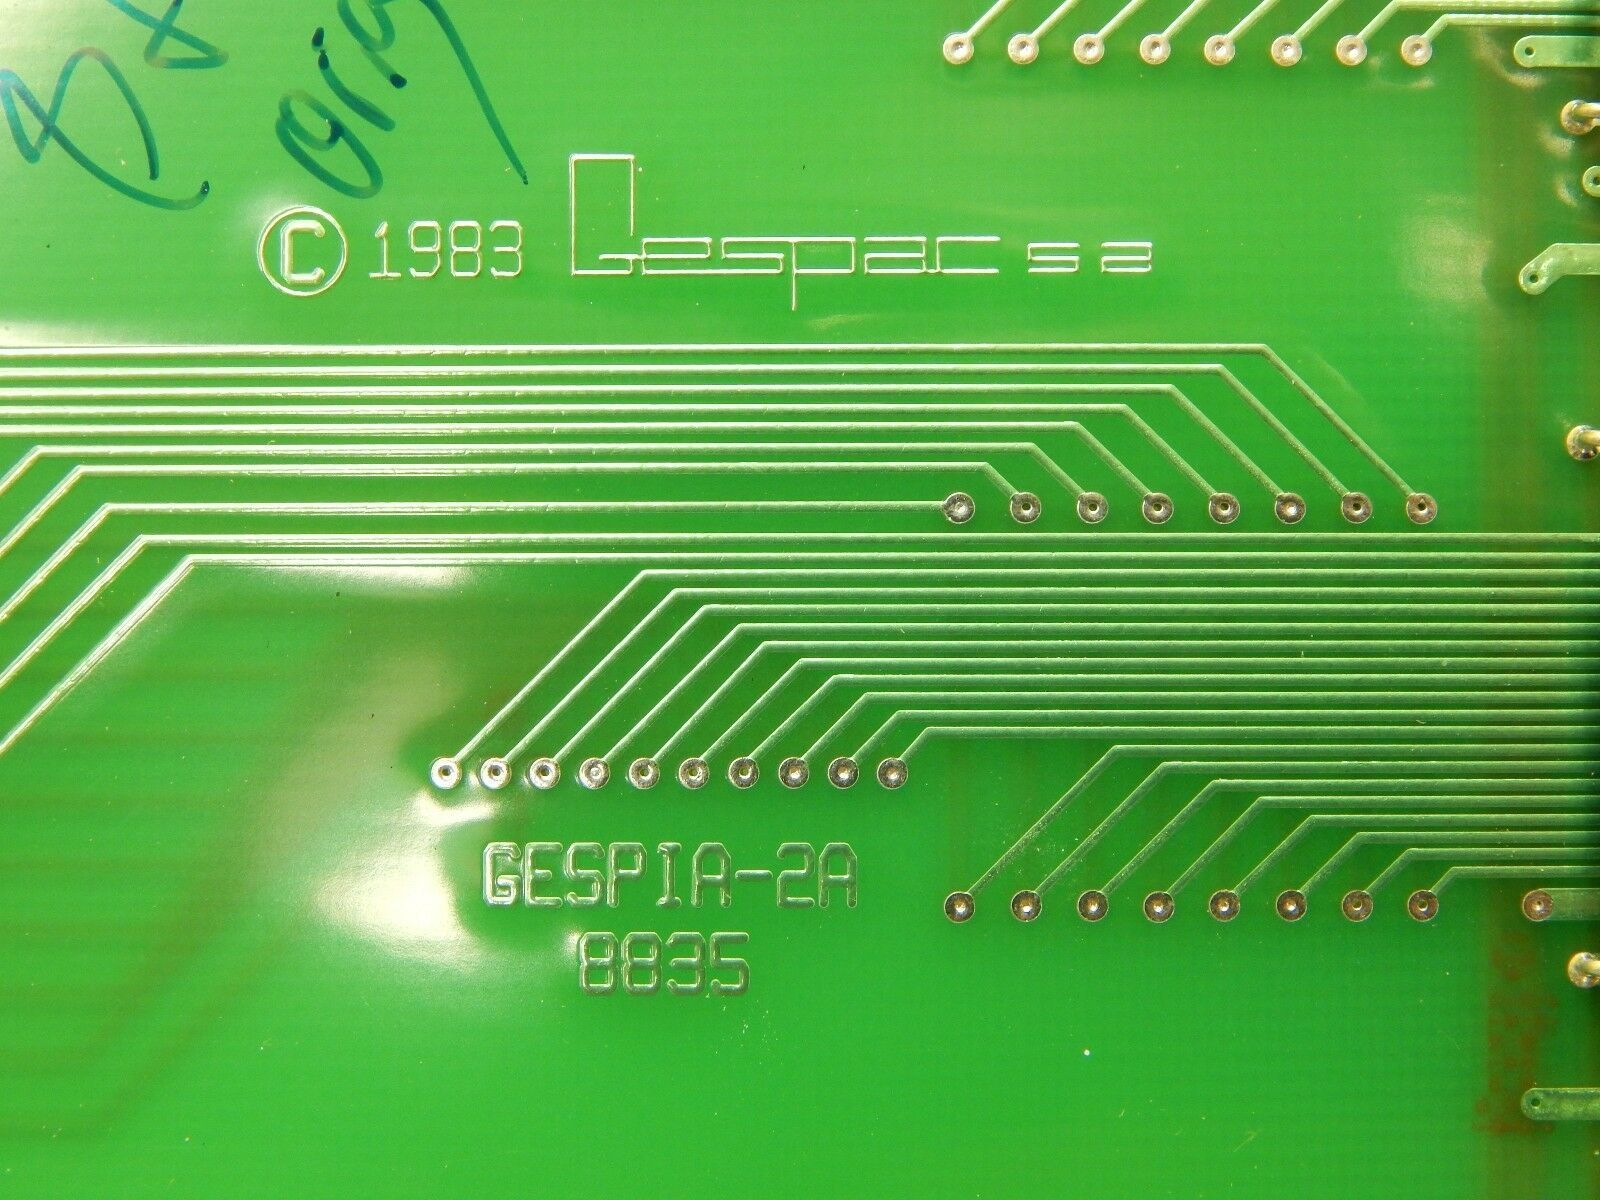 Gespac GESPIA-2A 8835 PCB Card PIA-2A OnTrak DSS-200 Used Working